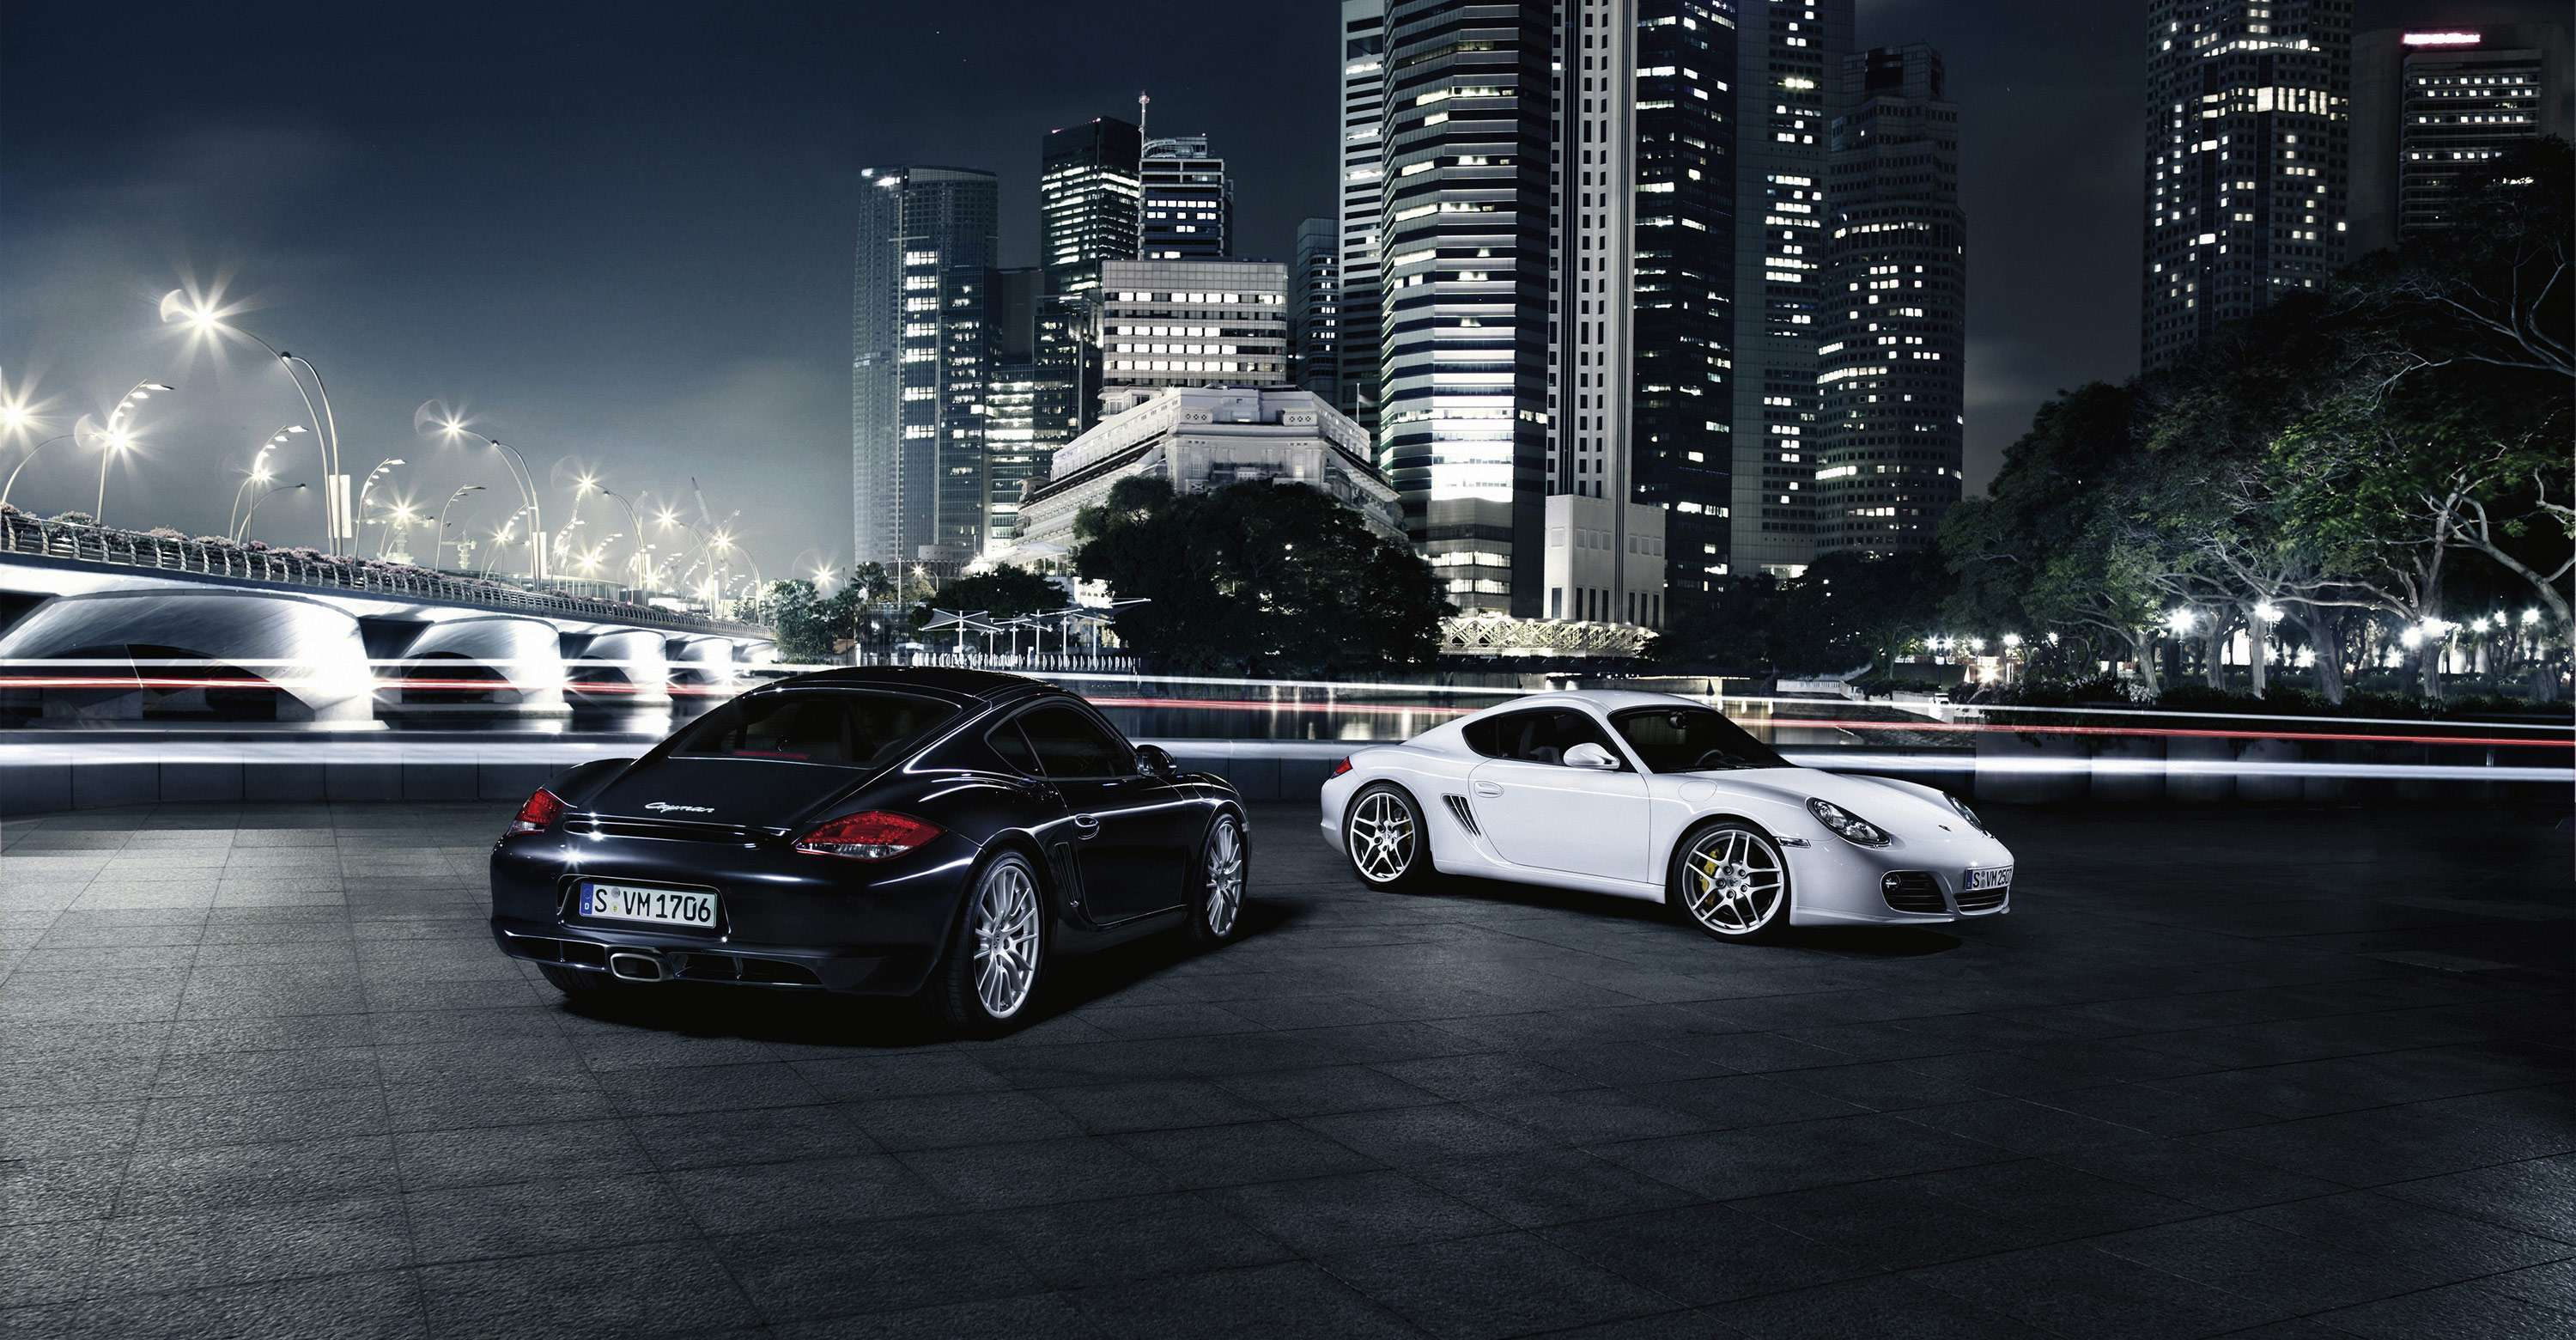 Pack De Wallpaper De Carros Full Hd: Porsche Cayman 9 Hd Wallpapers : Hd Car Wallpapers